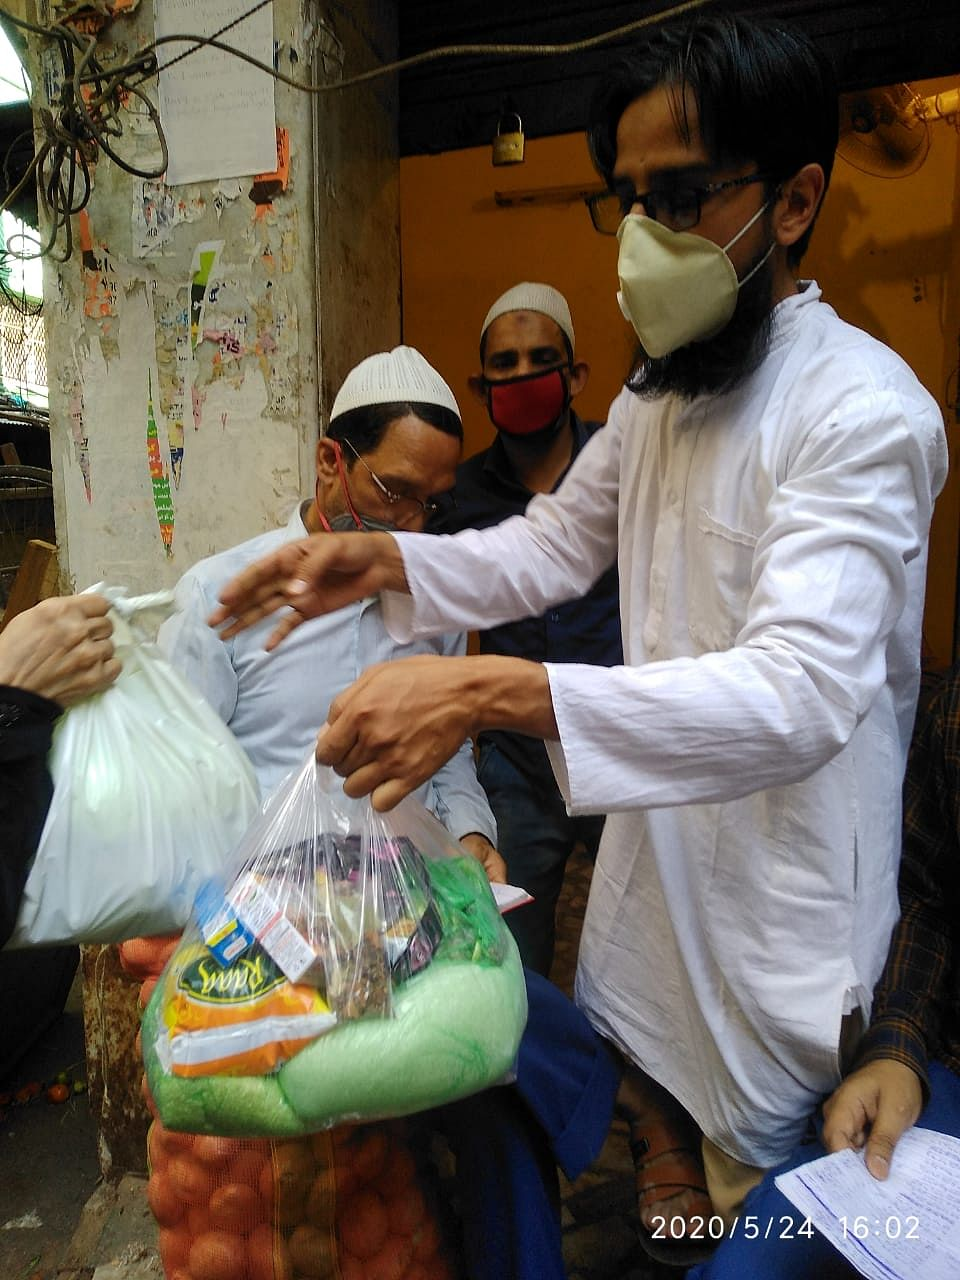 Around 70 such families were in need of regular help as long as lockdown continued.